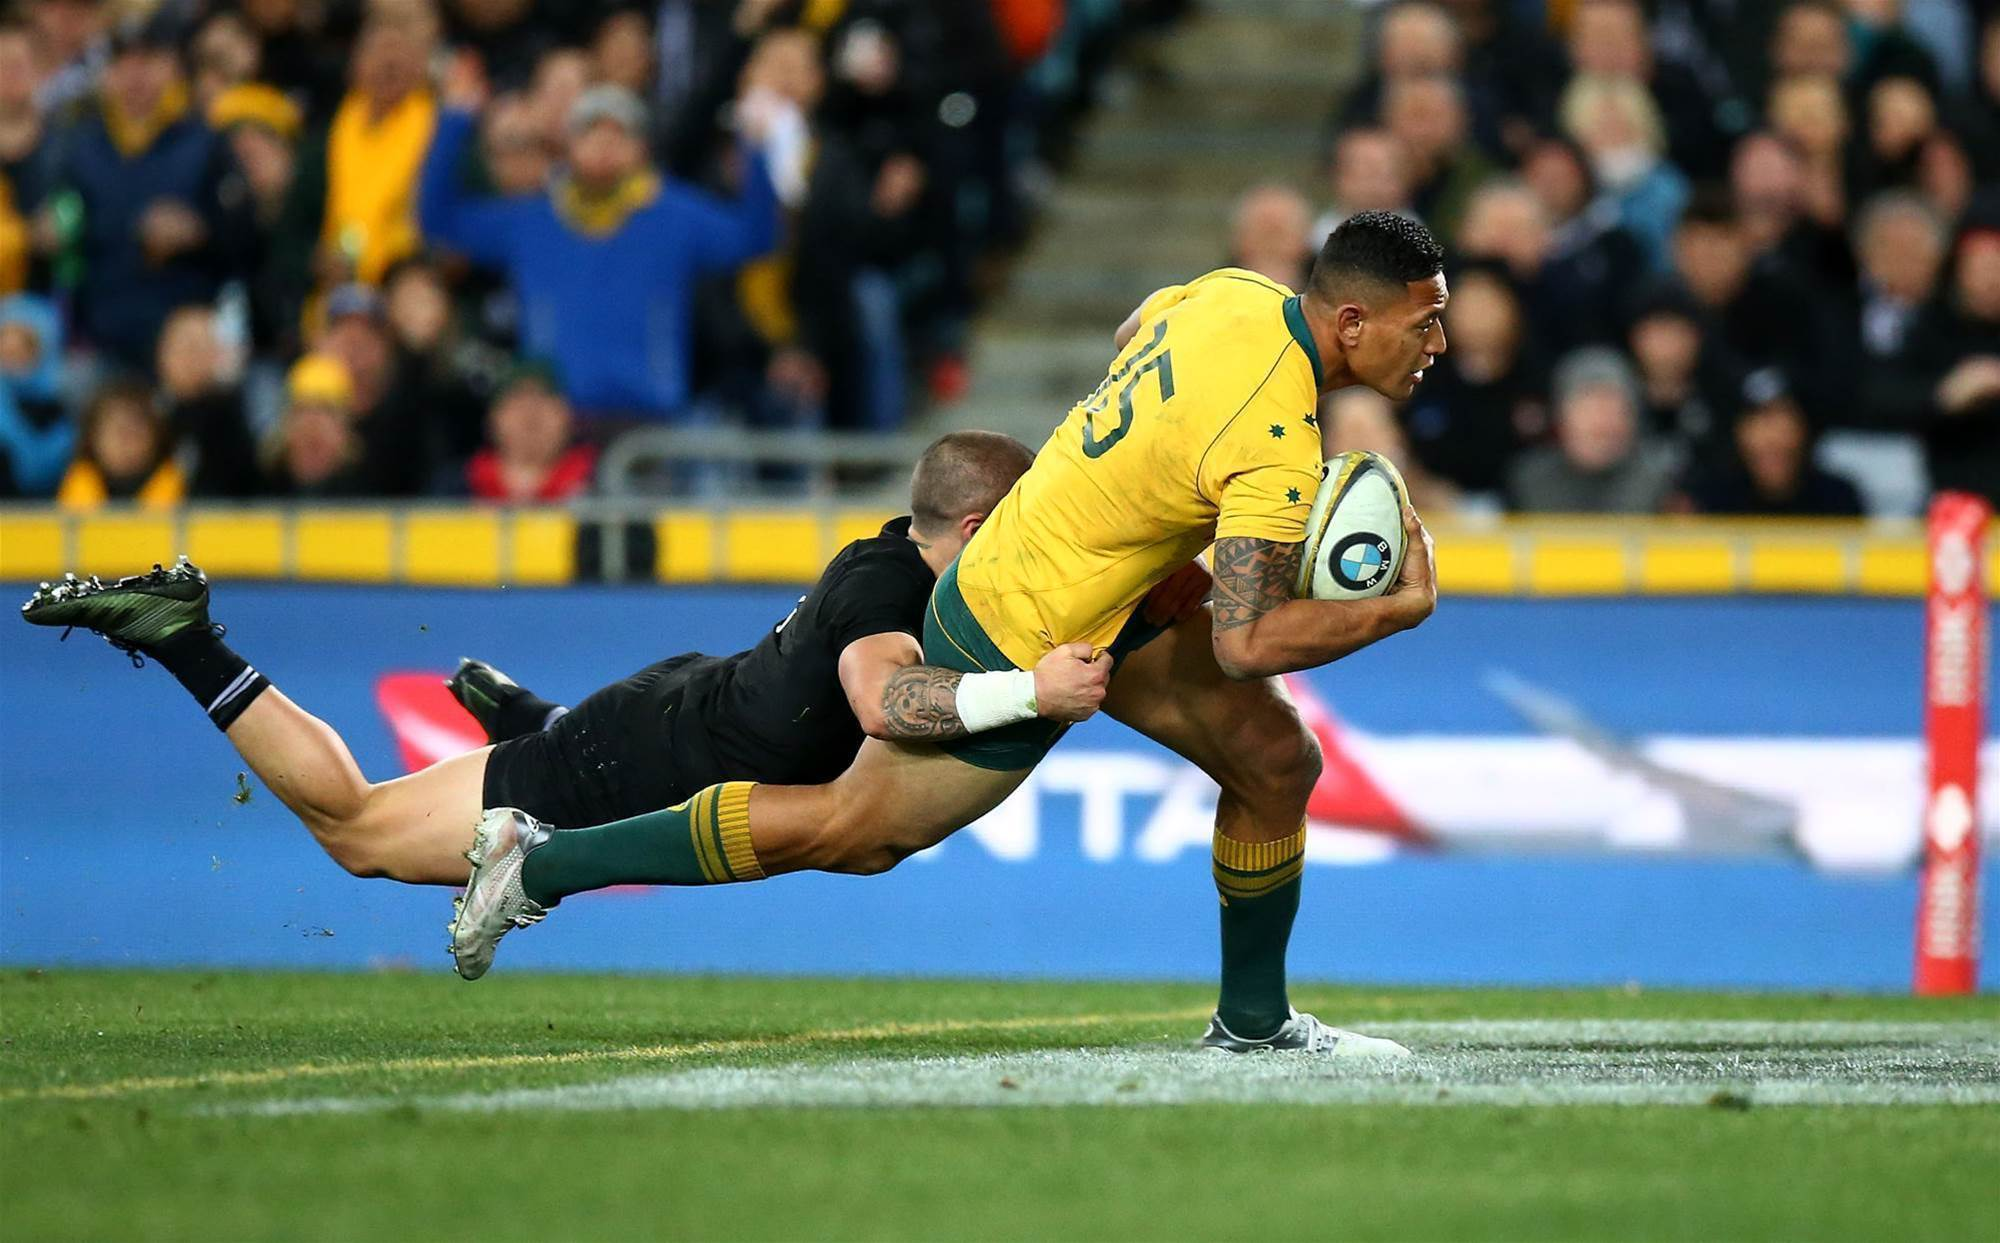 Wallabies' comeback falls well short